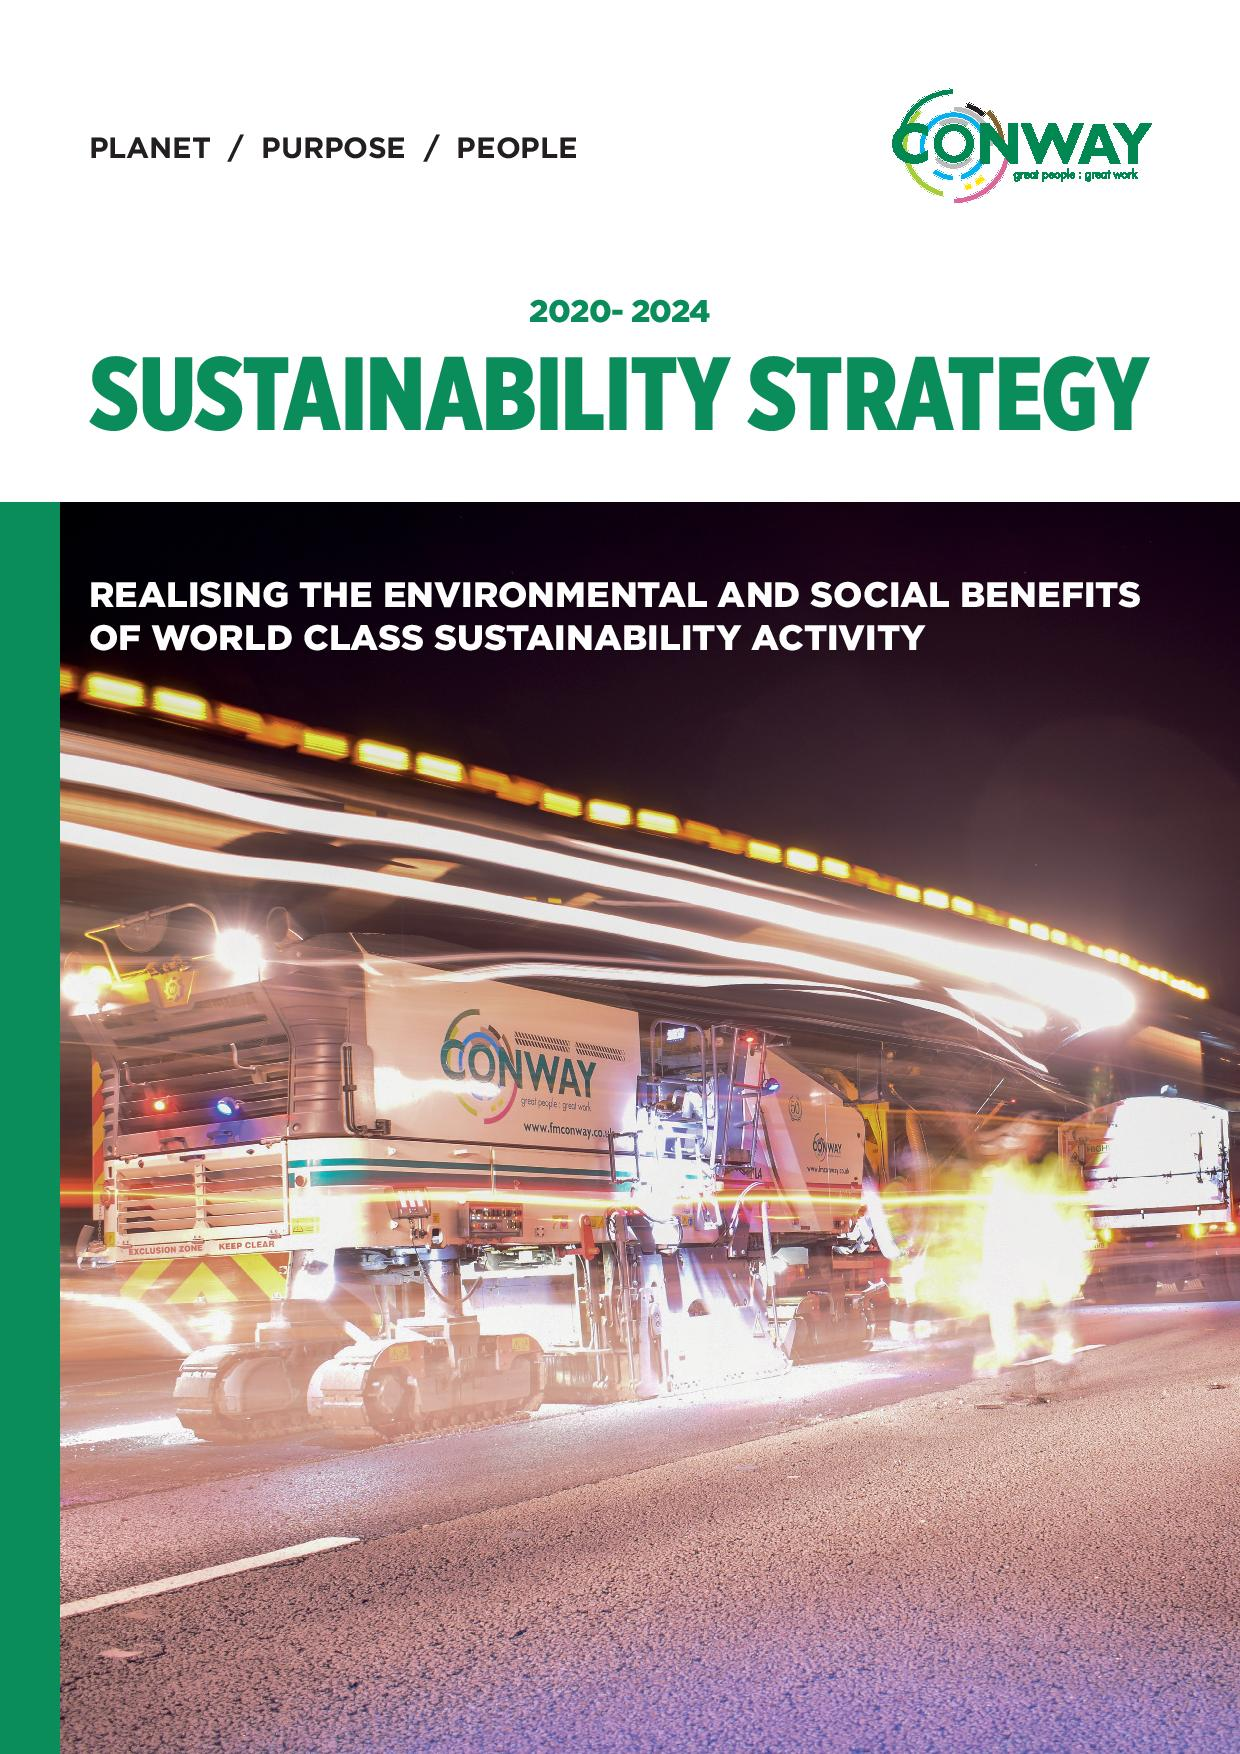 /files/library/images/about us/Library/Products/Sustainability_Strategy_Cover.jpg